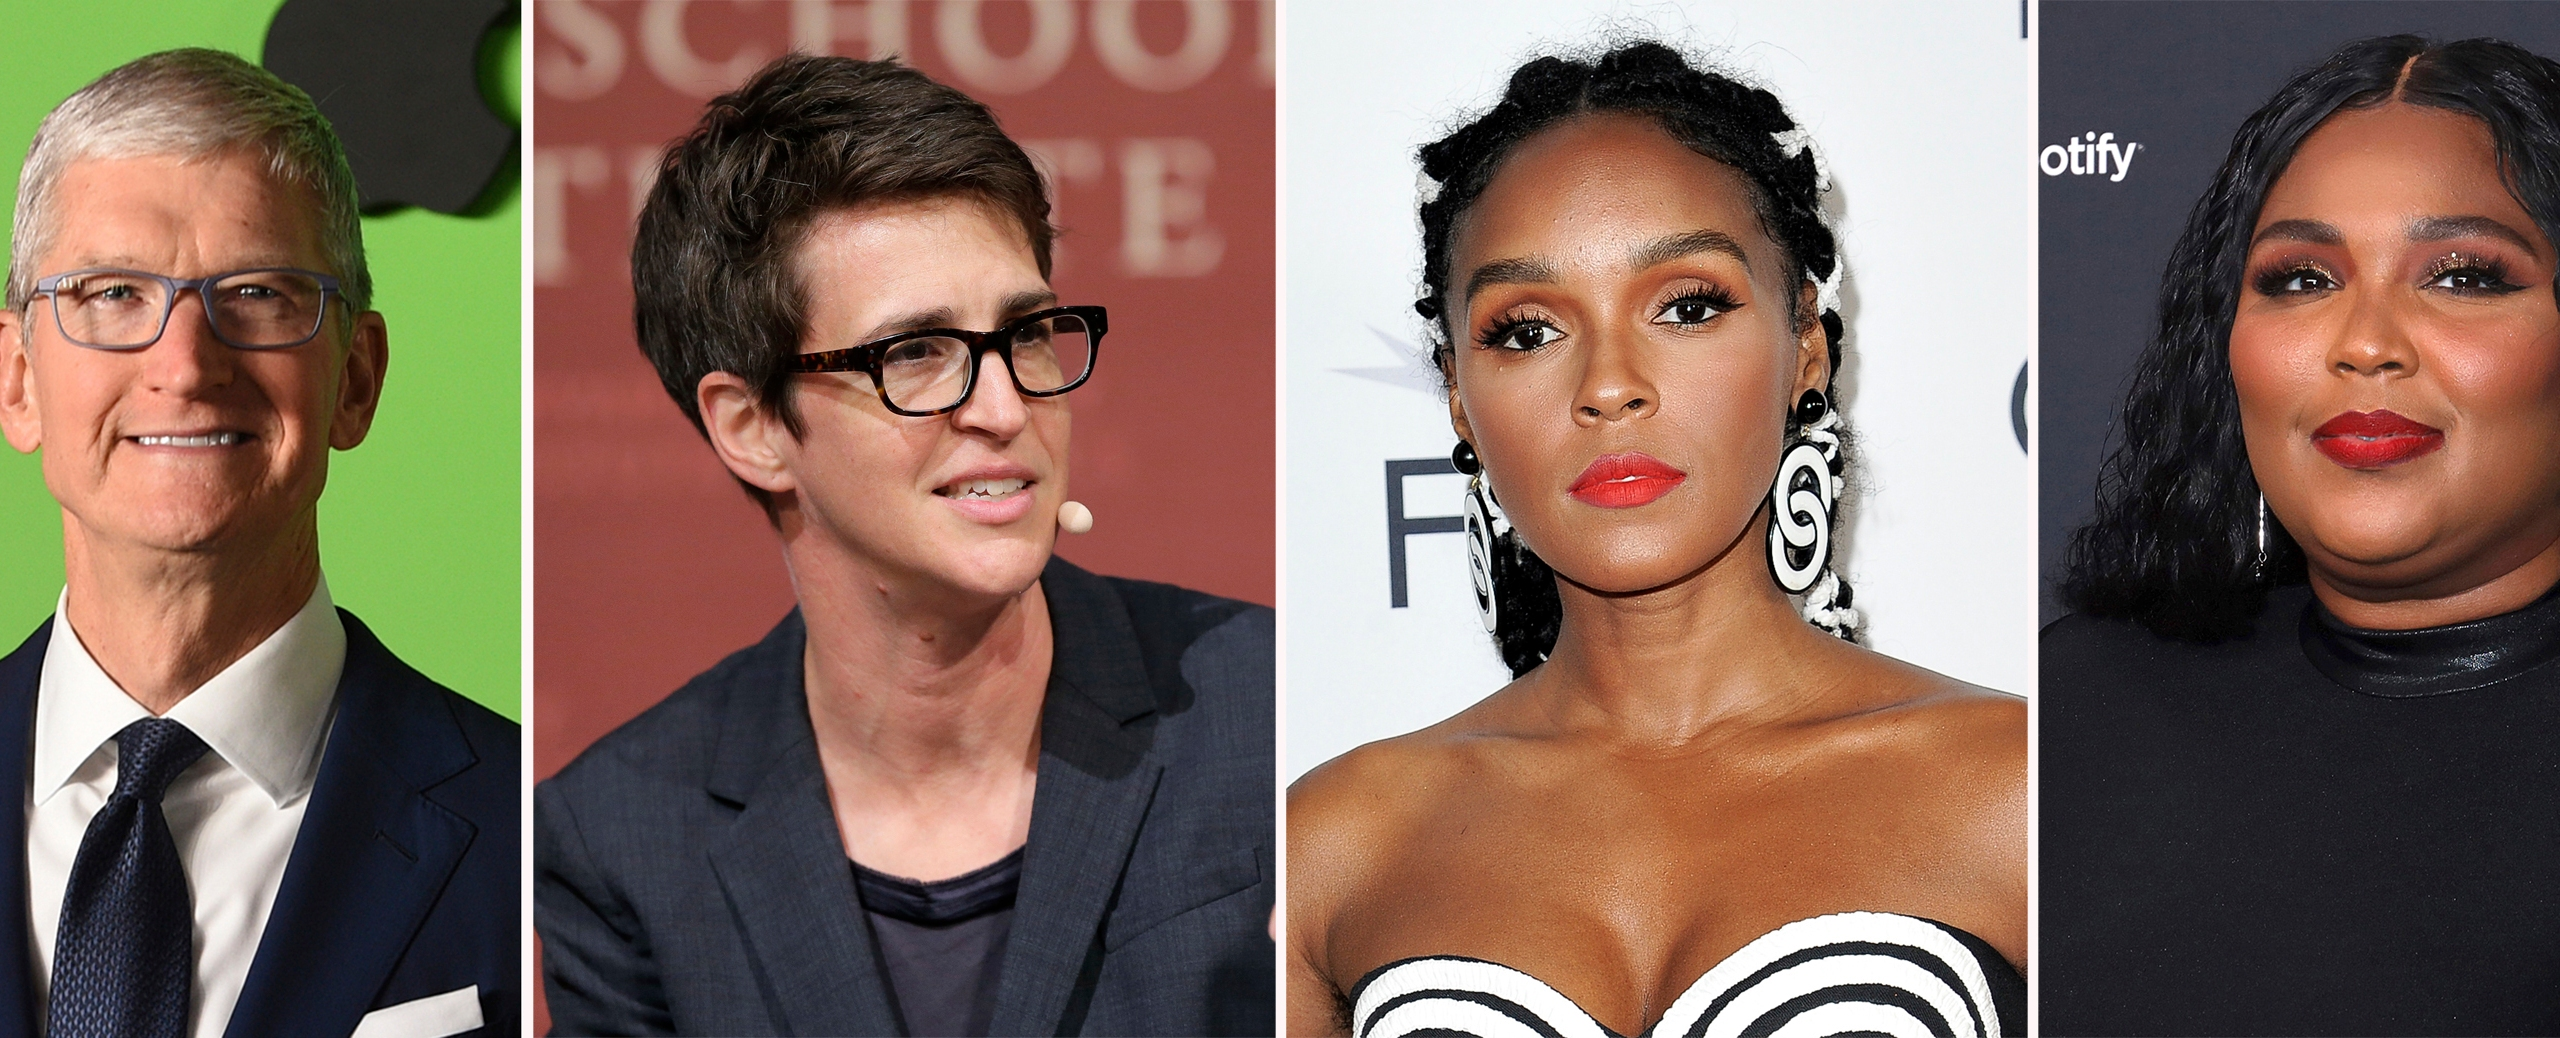 Tim Cook, Rachel Maddow, Janelle Monae, Lizzo